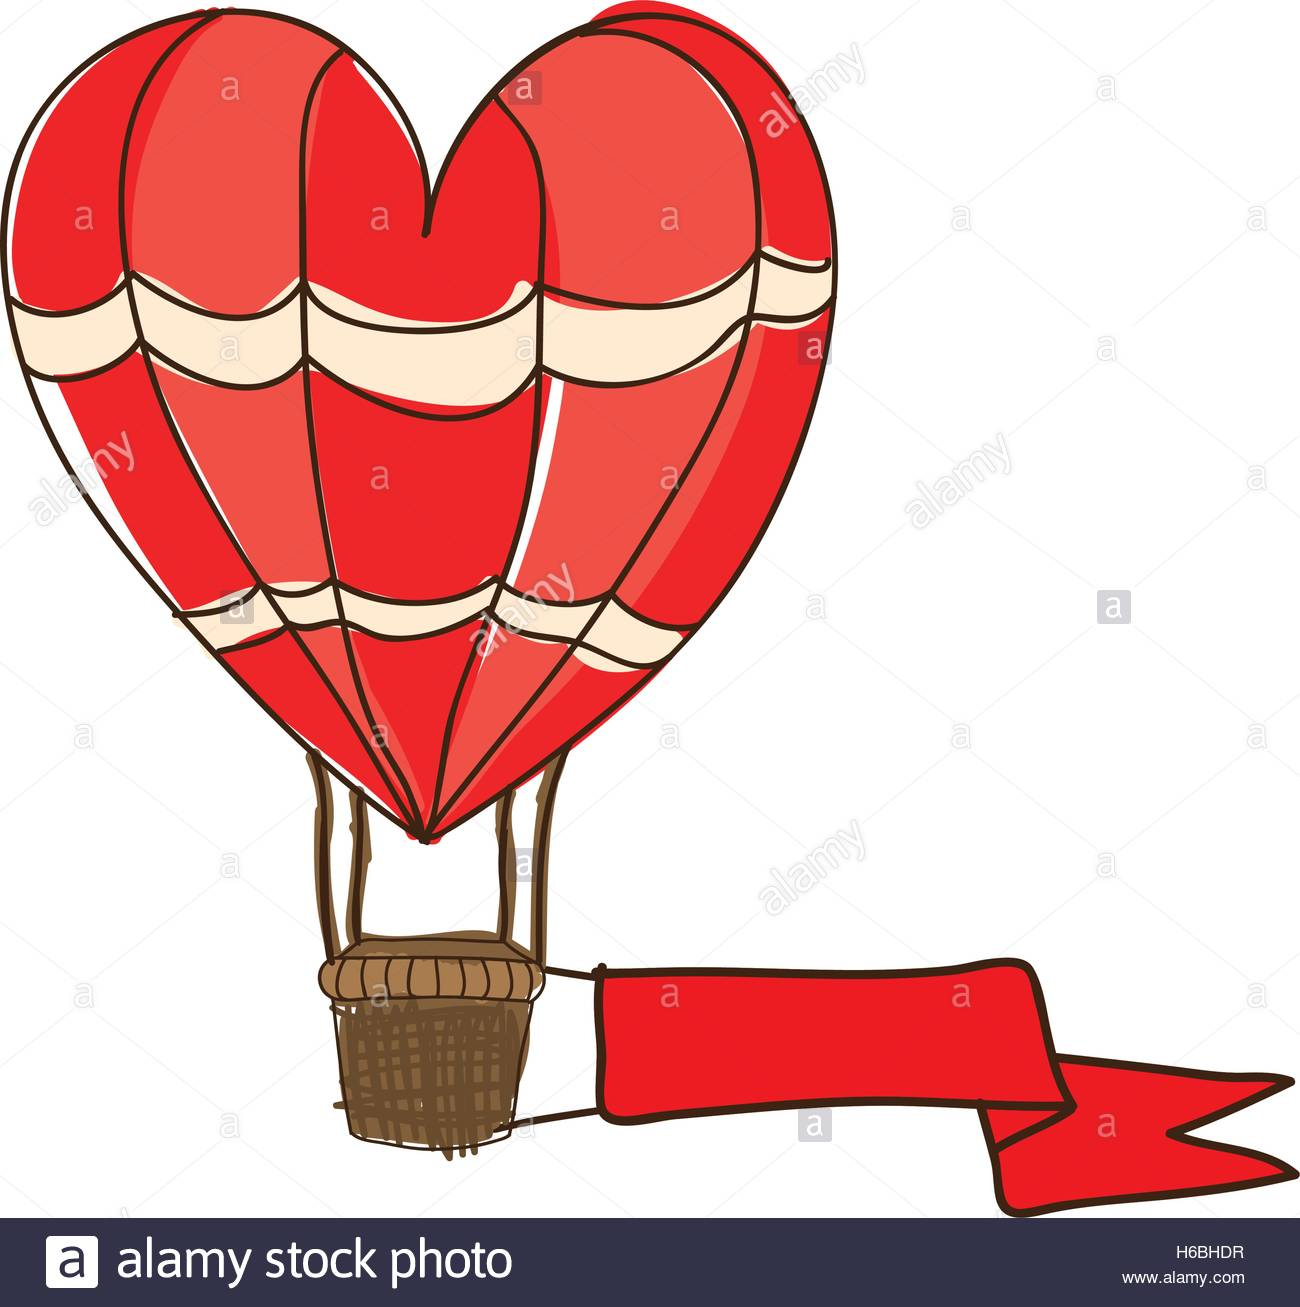 1300x1307 Heart Shape Hot Air Balloon Cartoon Icon Image Vector Illustration